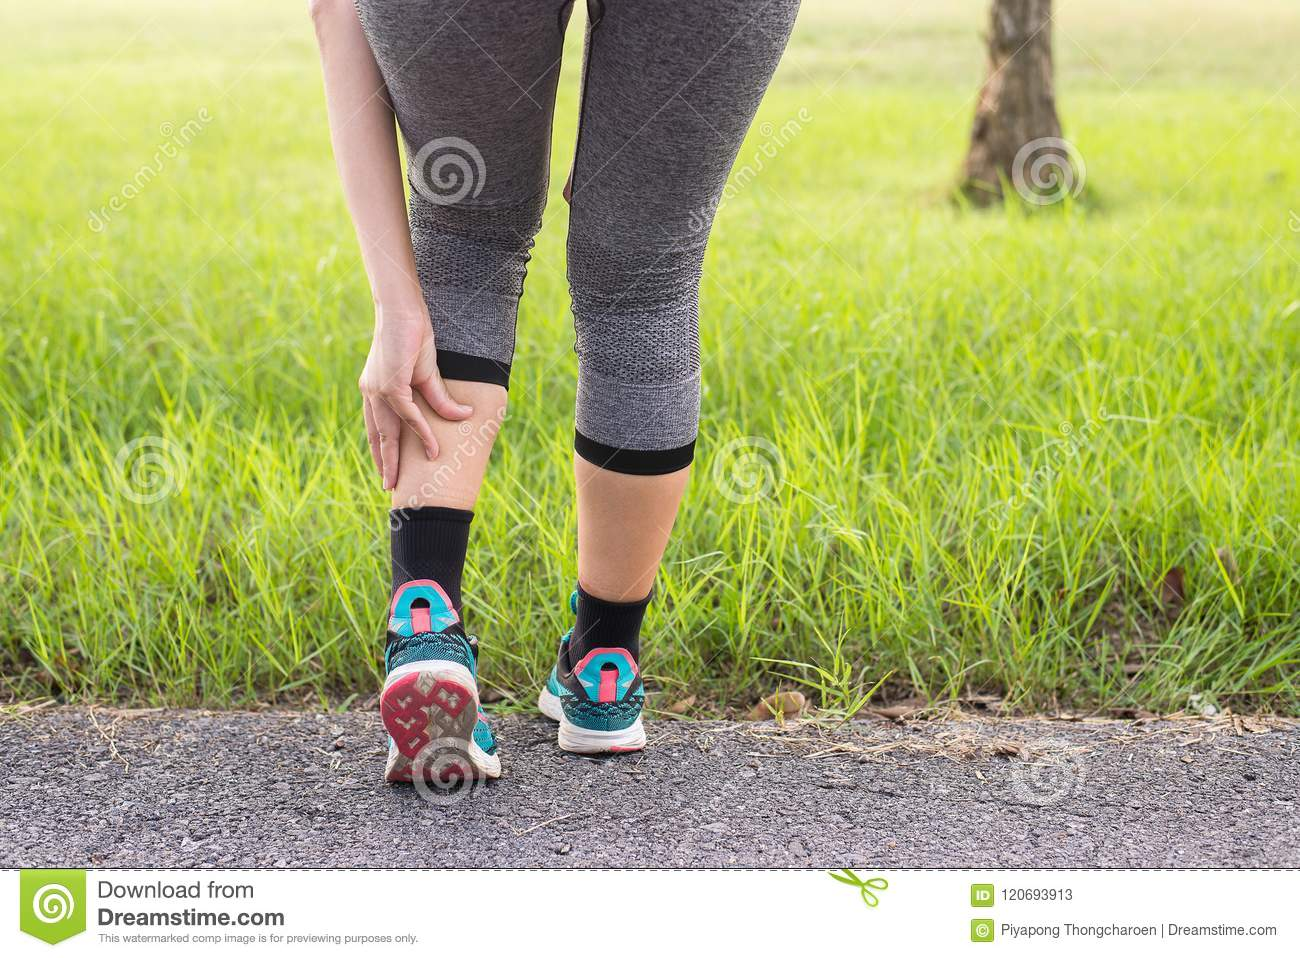 Calf muscle in pain with cramp,Woman suffering from pain in leg injury after sport exercise running jogging and workout